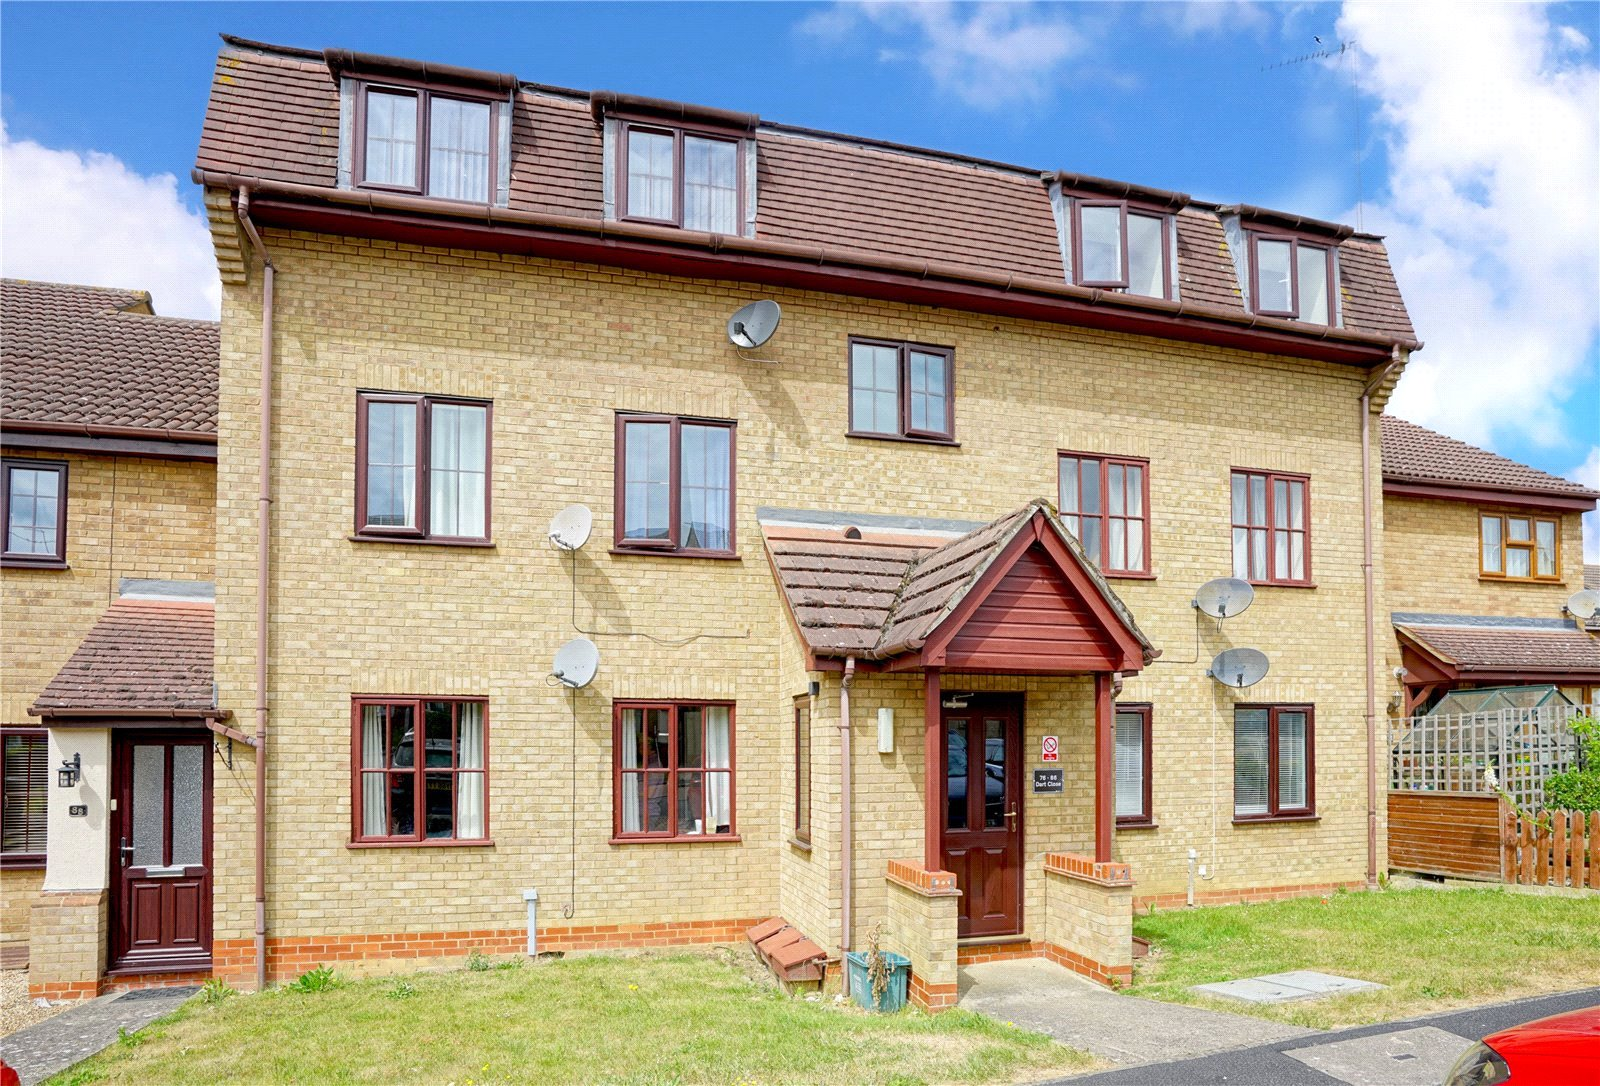 2 bed apartment for sale in St. Ives, PE27 3JB - Property Image 1